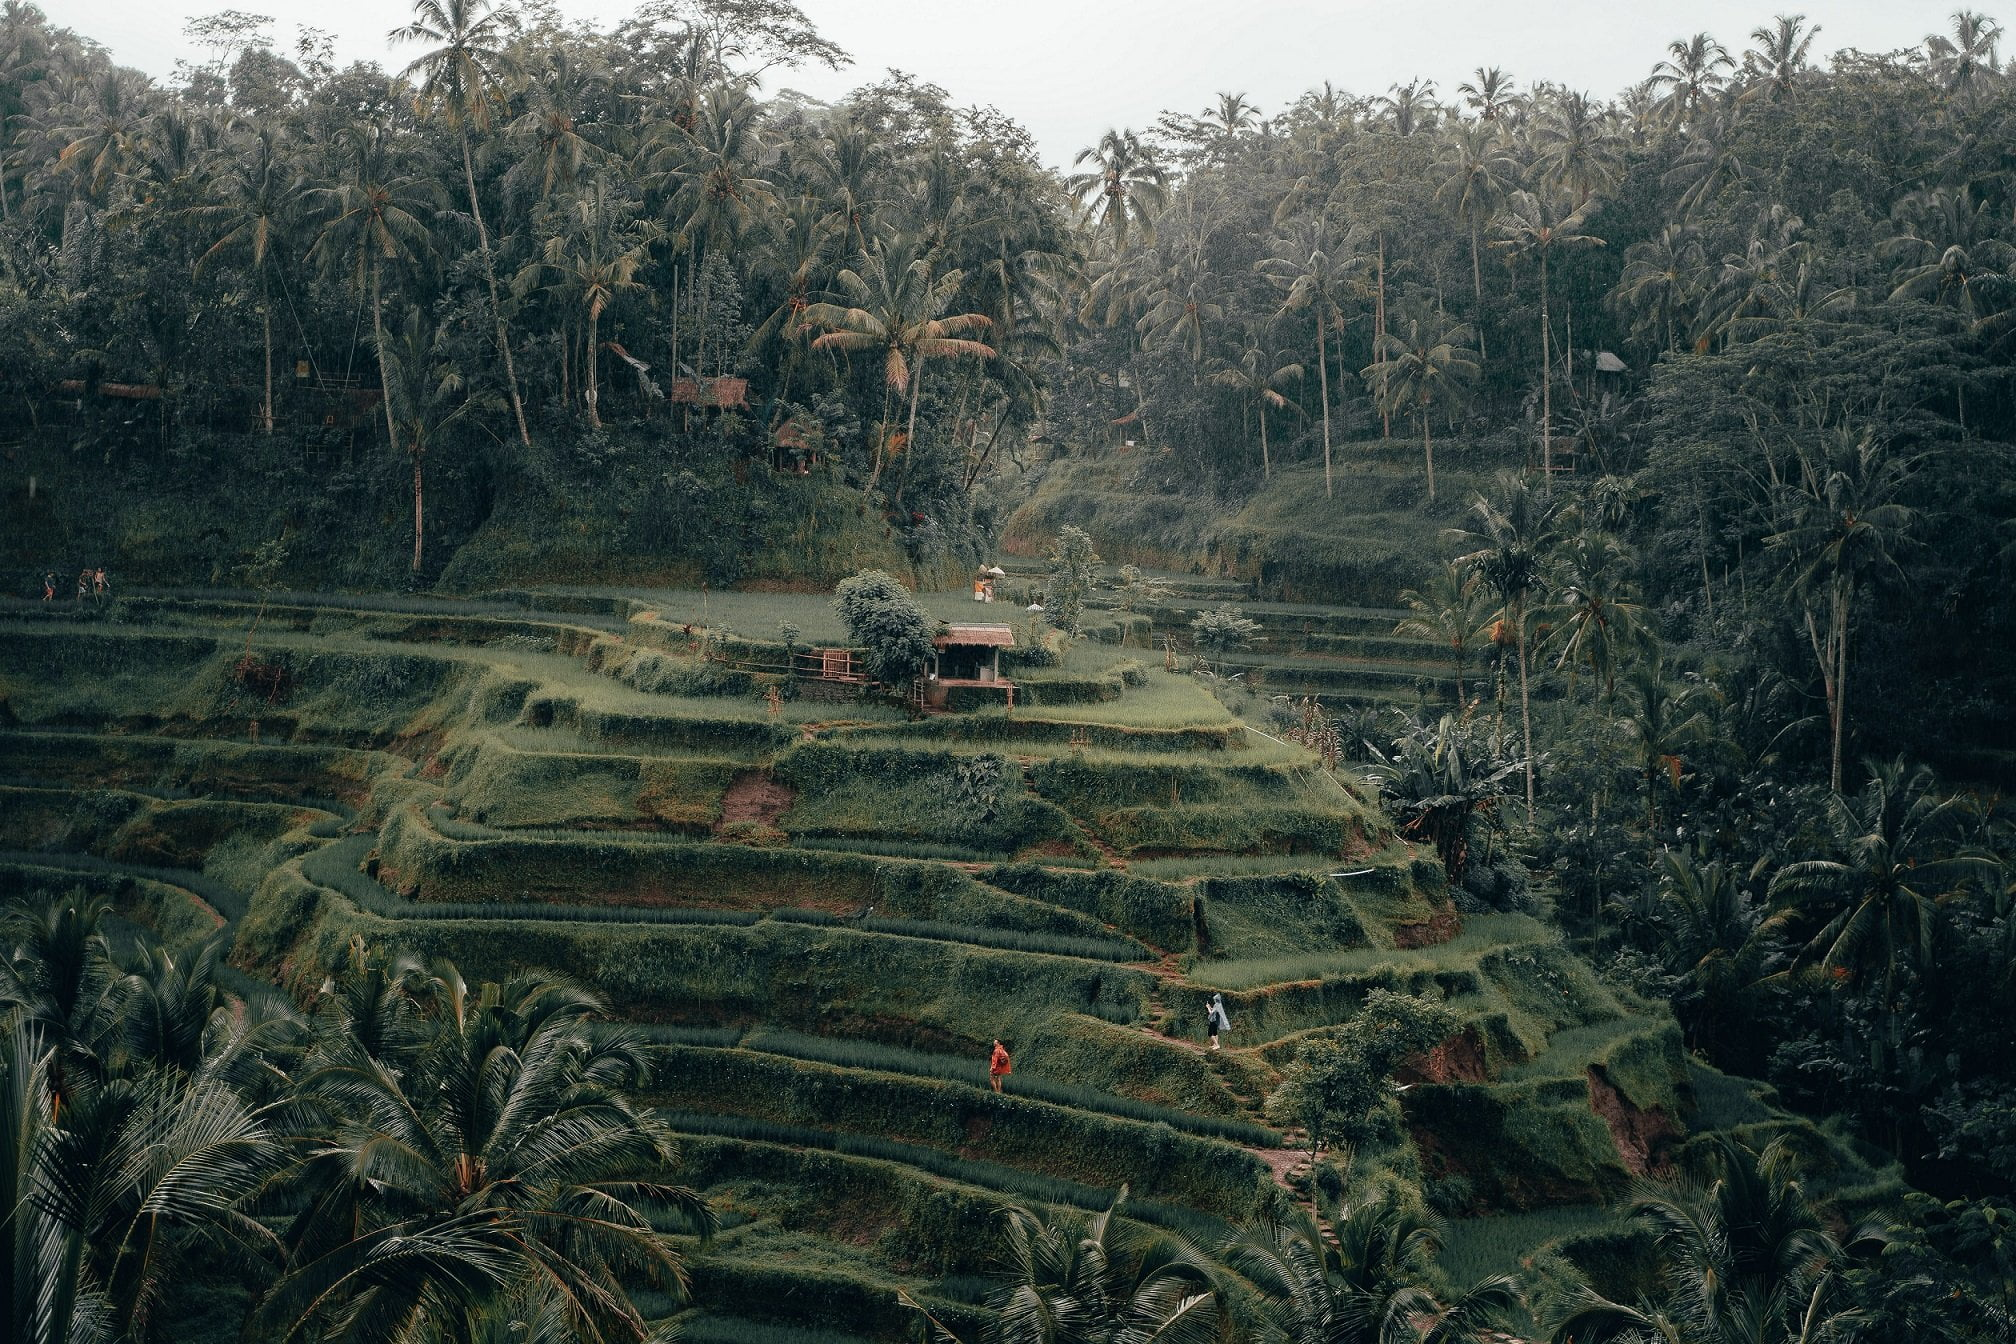 How to be a Better Bali Tourist